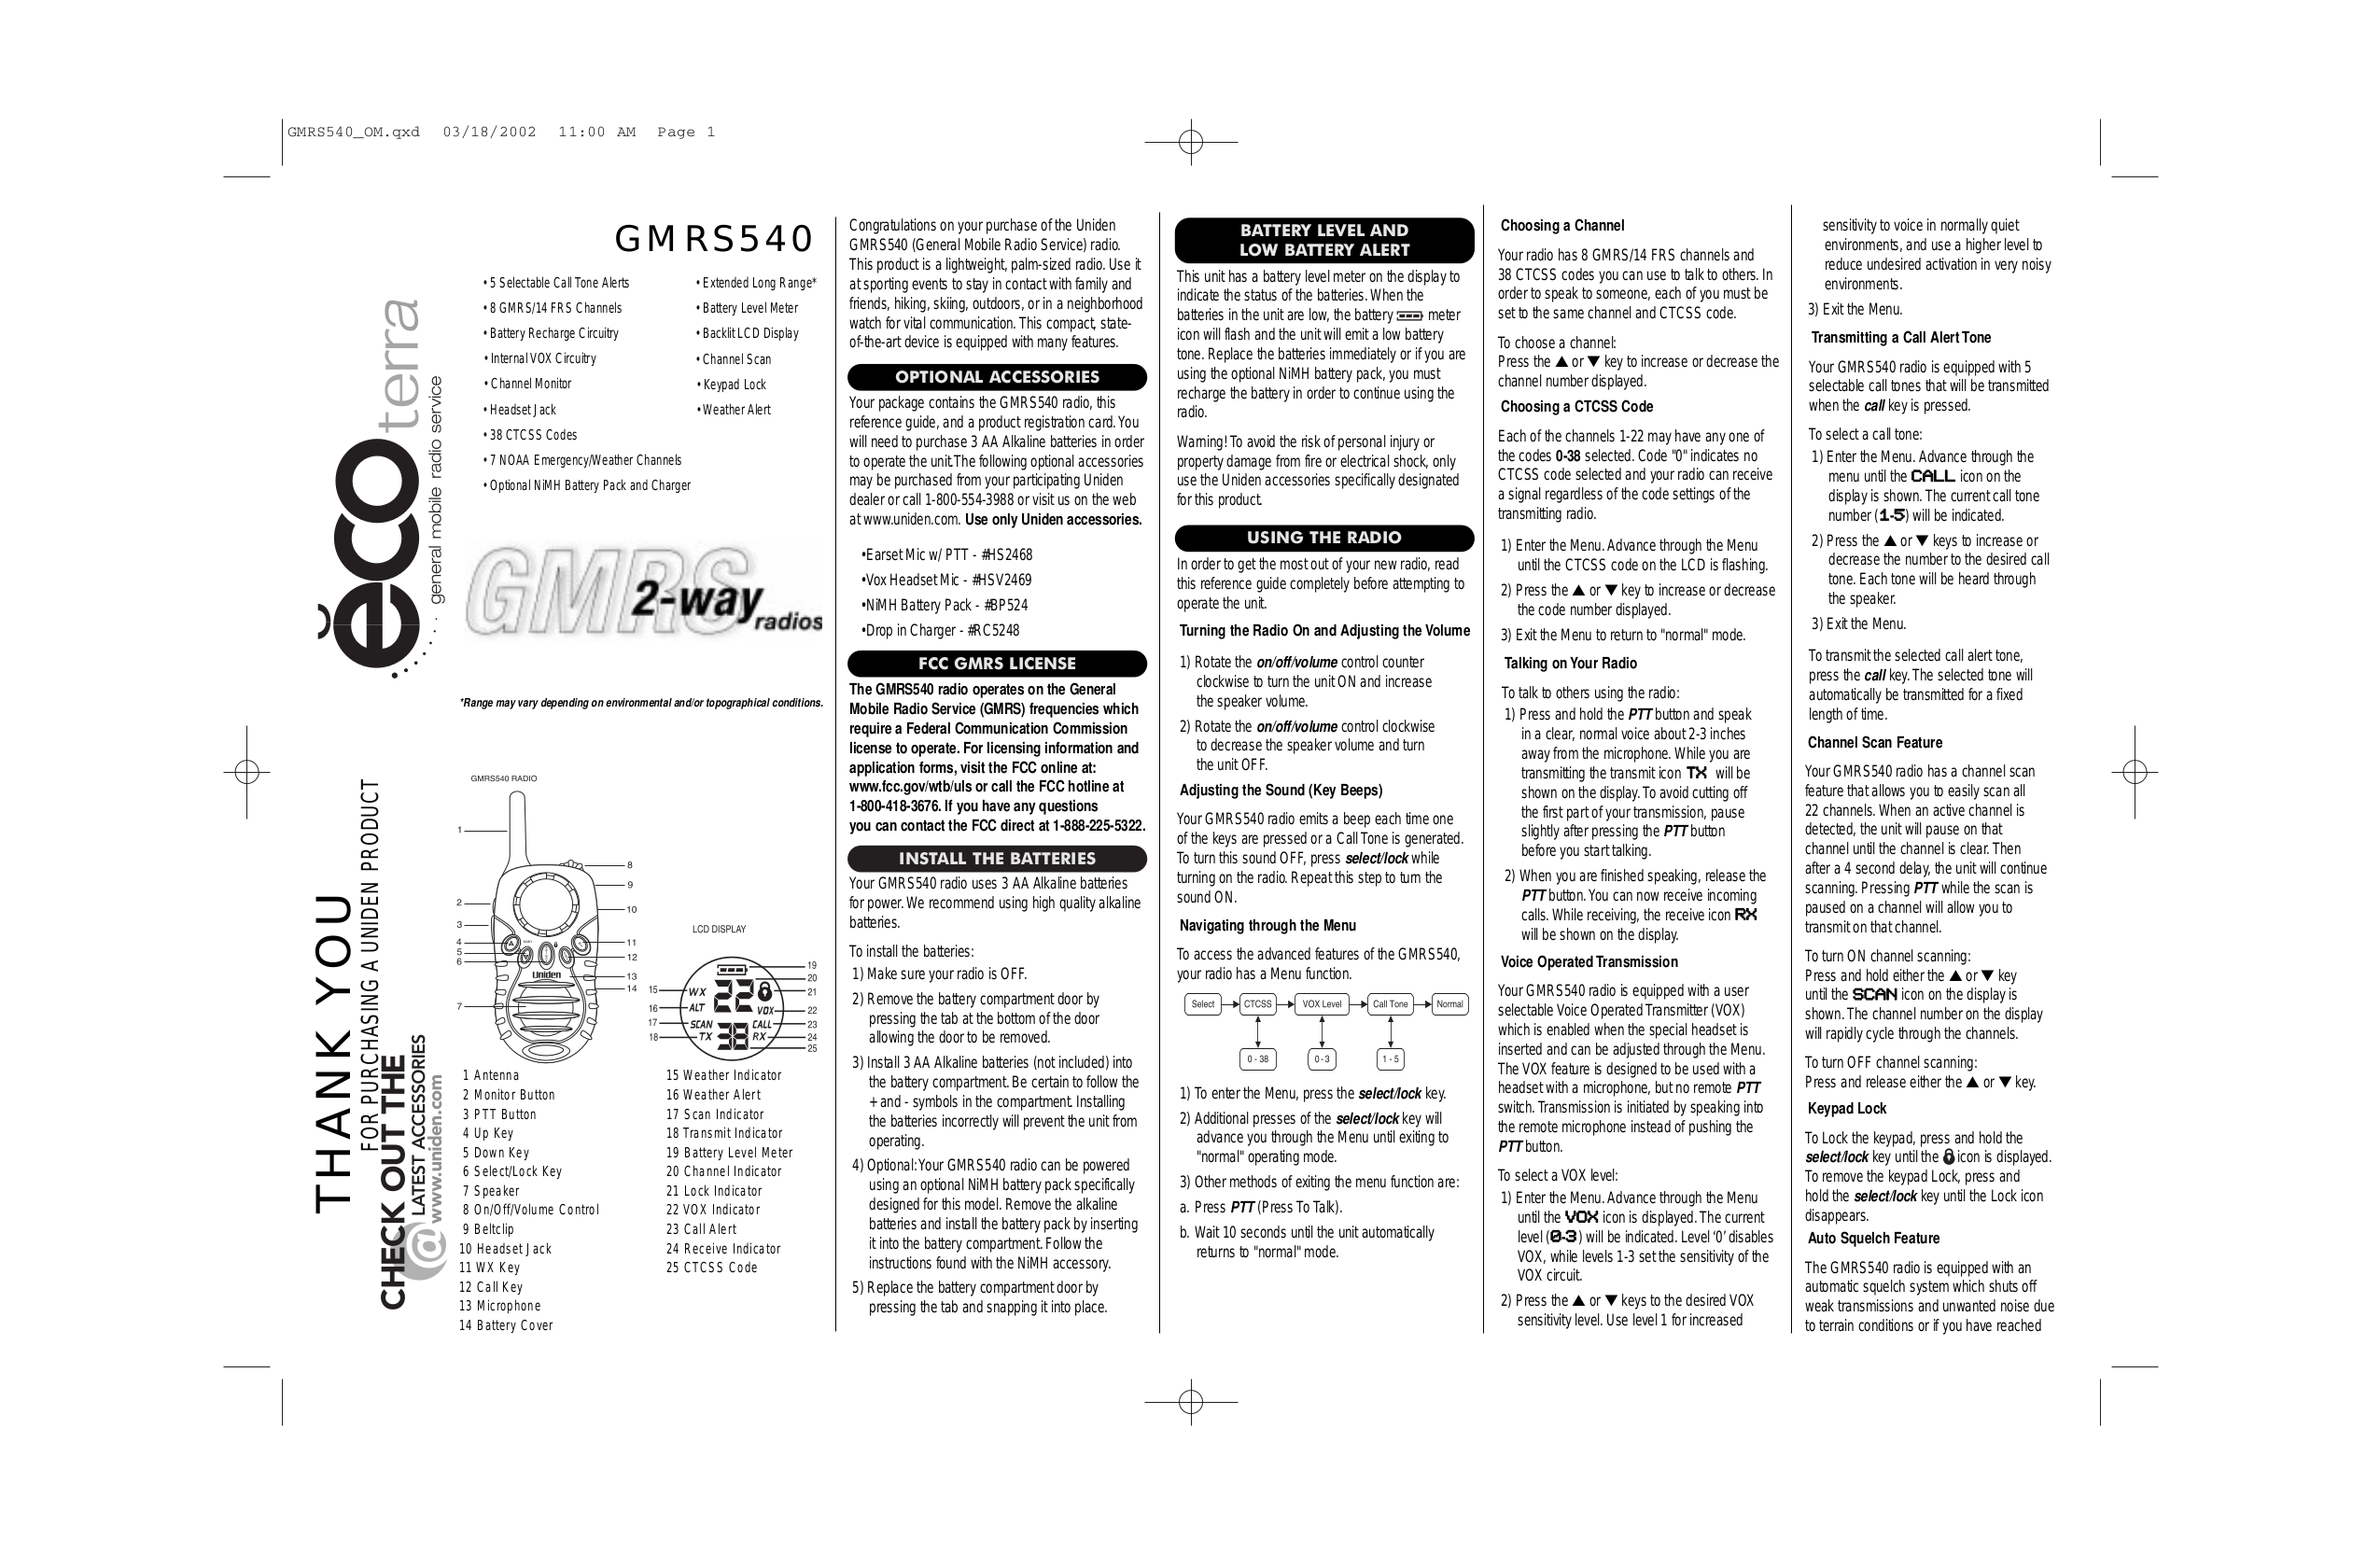 pdf for Uniden 2-way Radio GMRS540 manual